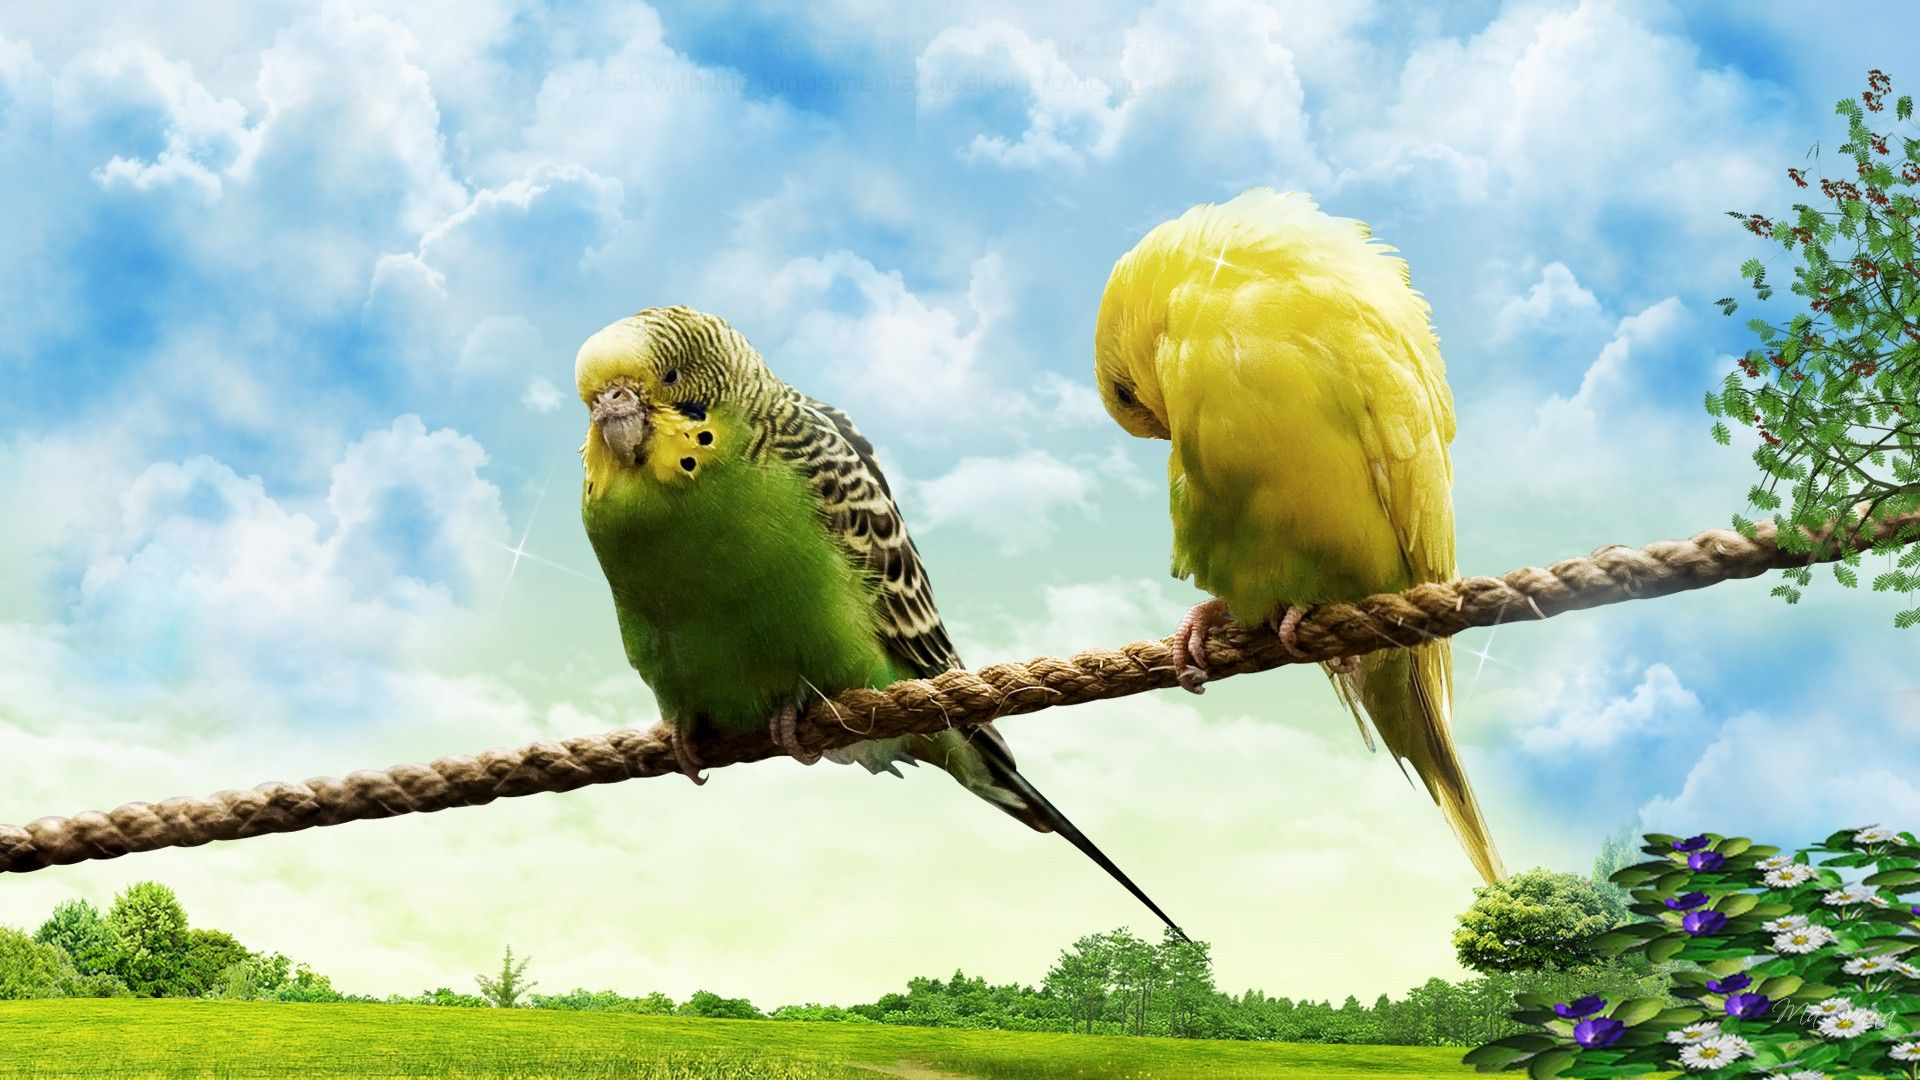 Budgies on a Rope (1920x1080).